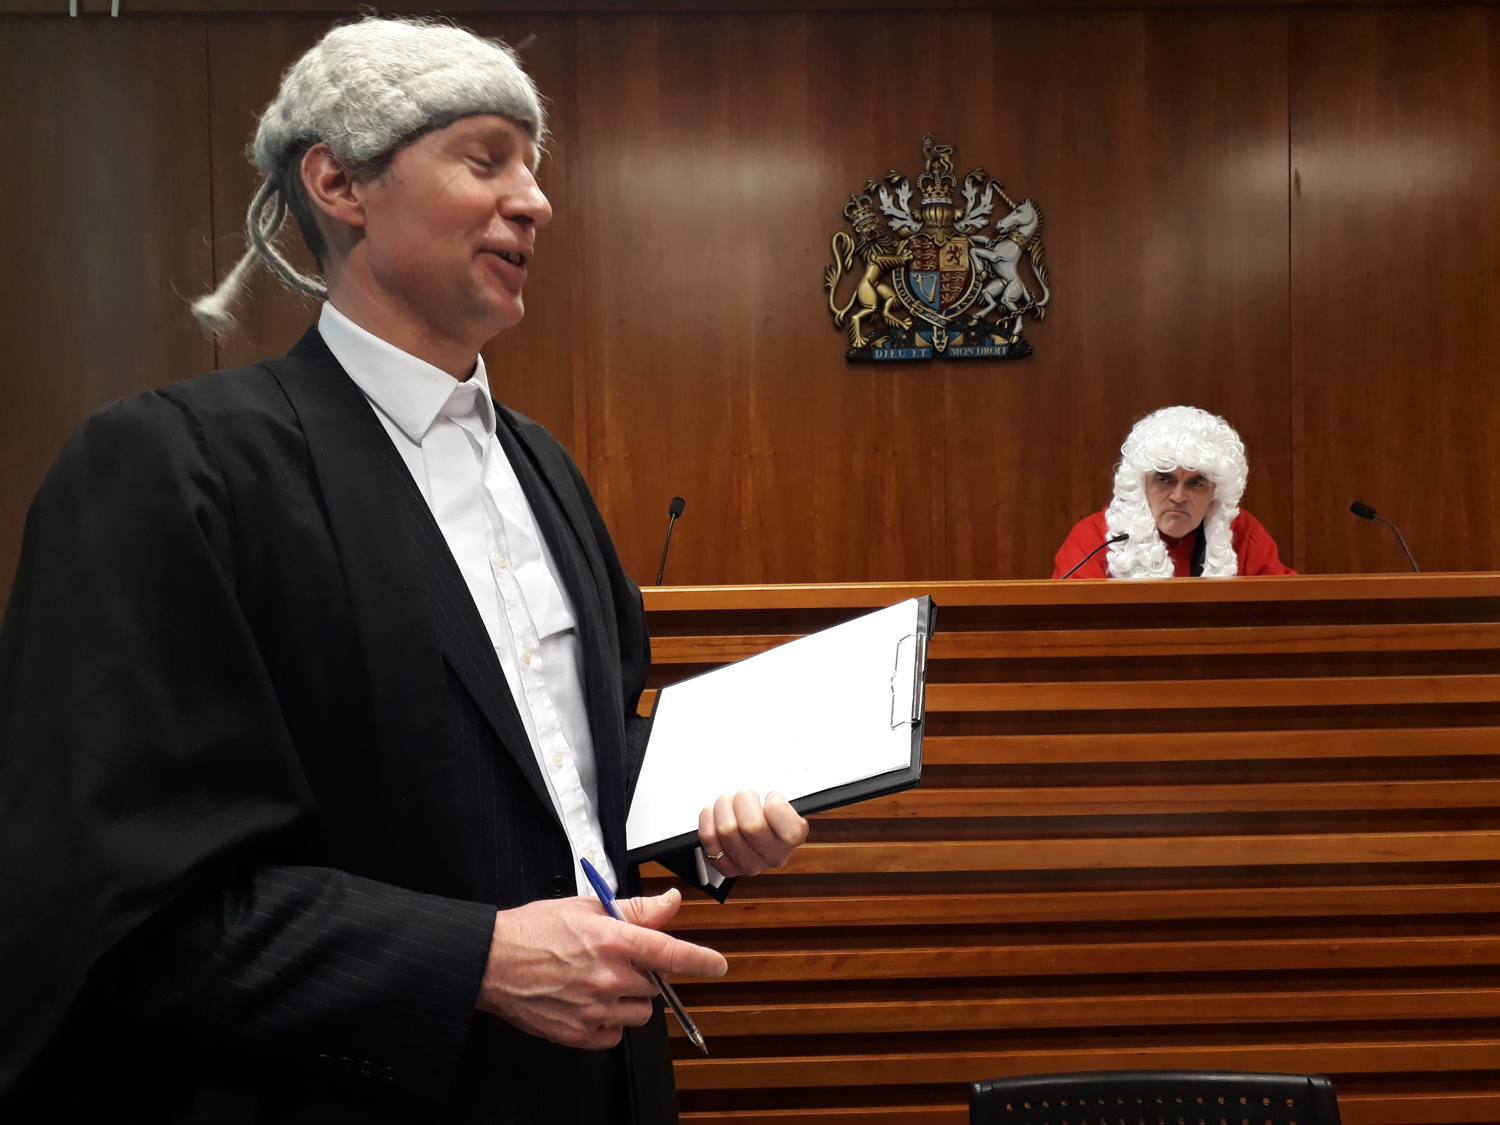 John Williams Defence Barrister Addressing The Jury